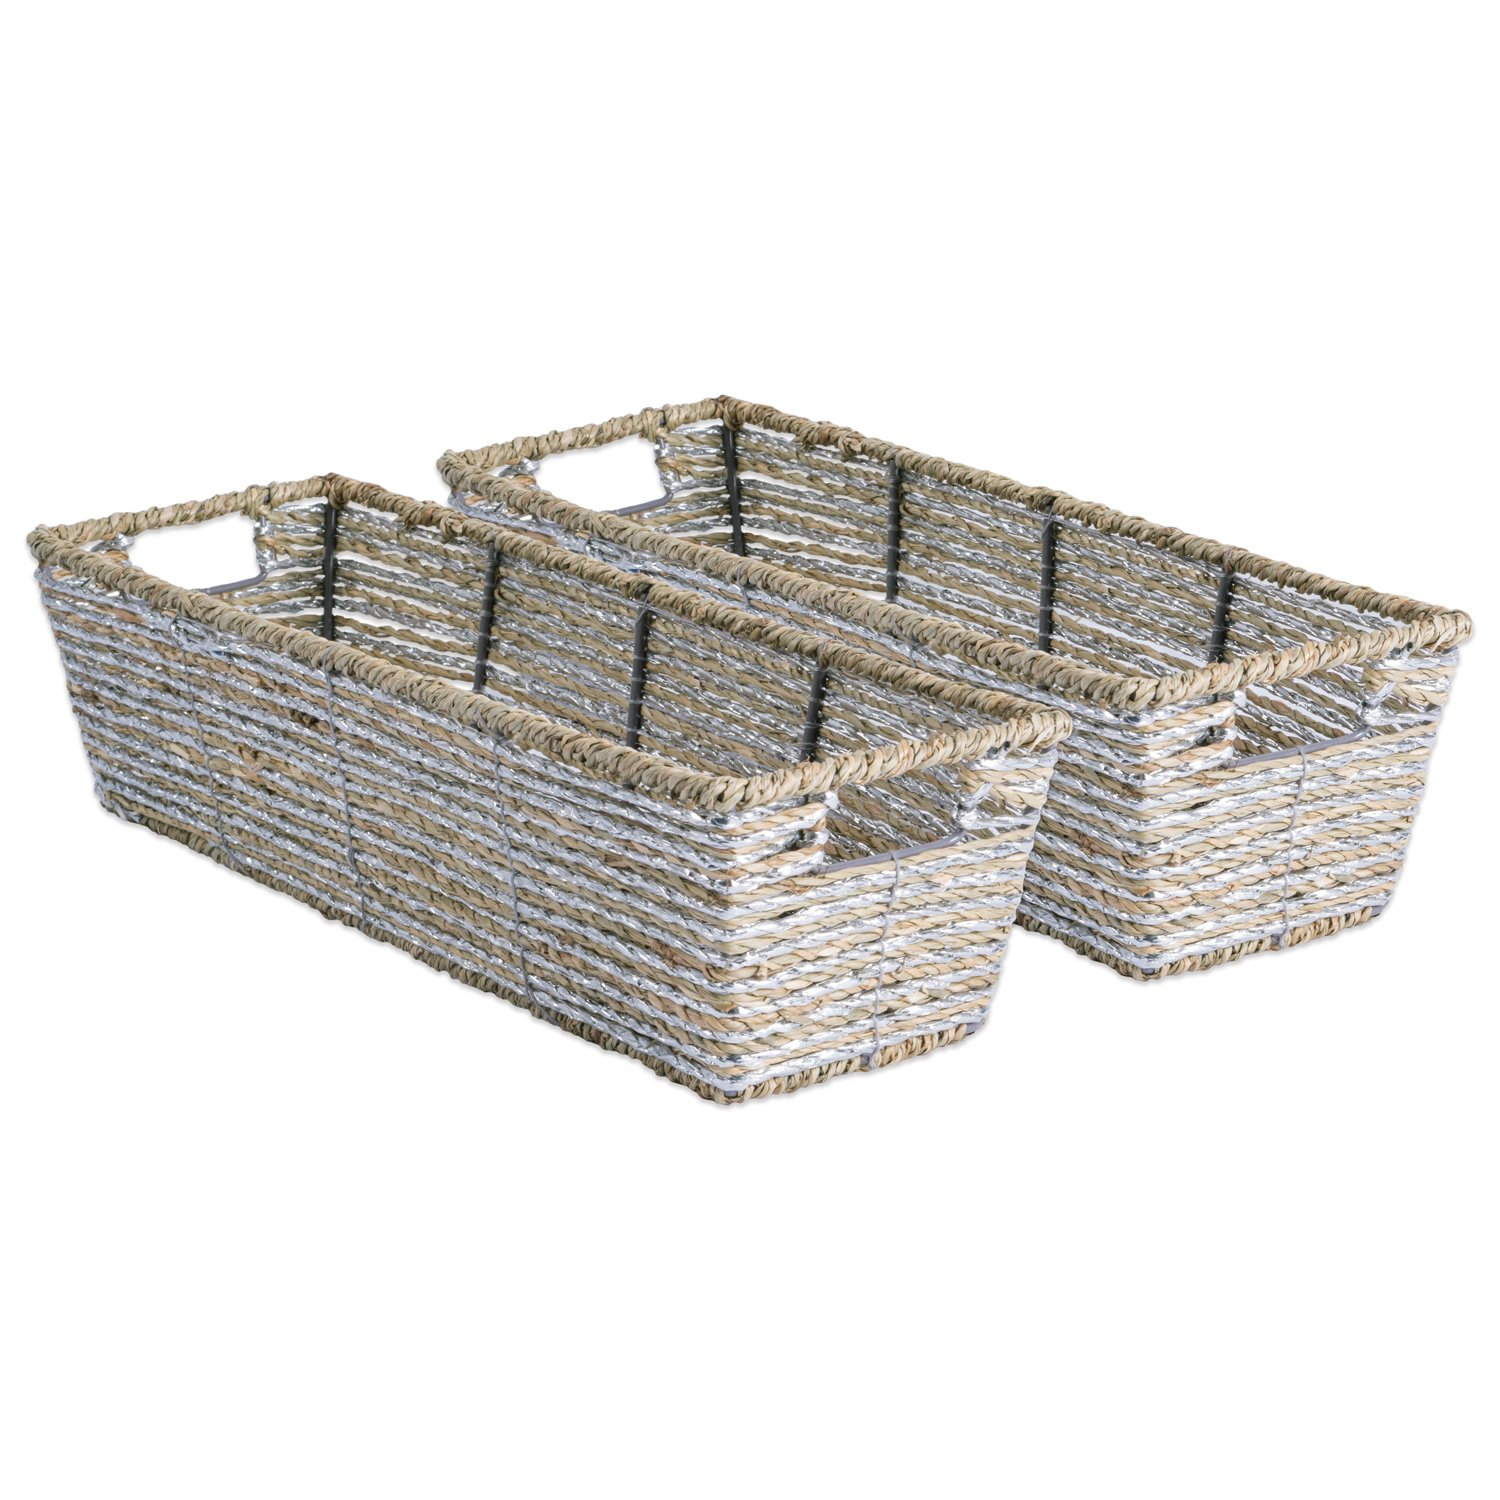 Amazon.com: DII Decorative Woven Seagrass Table Basket with Metallic ...